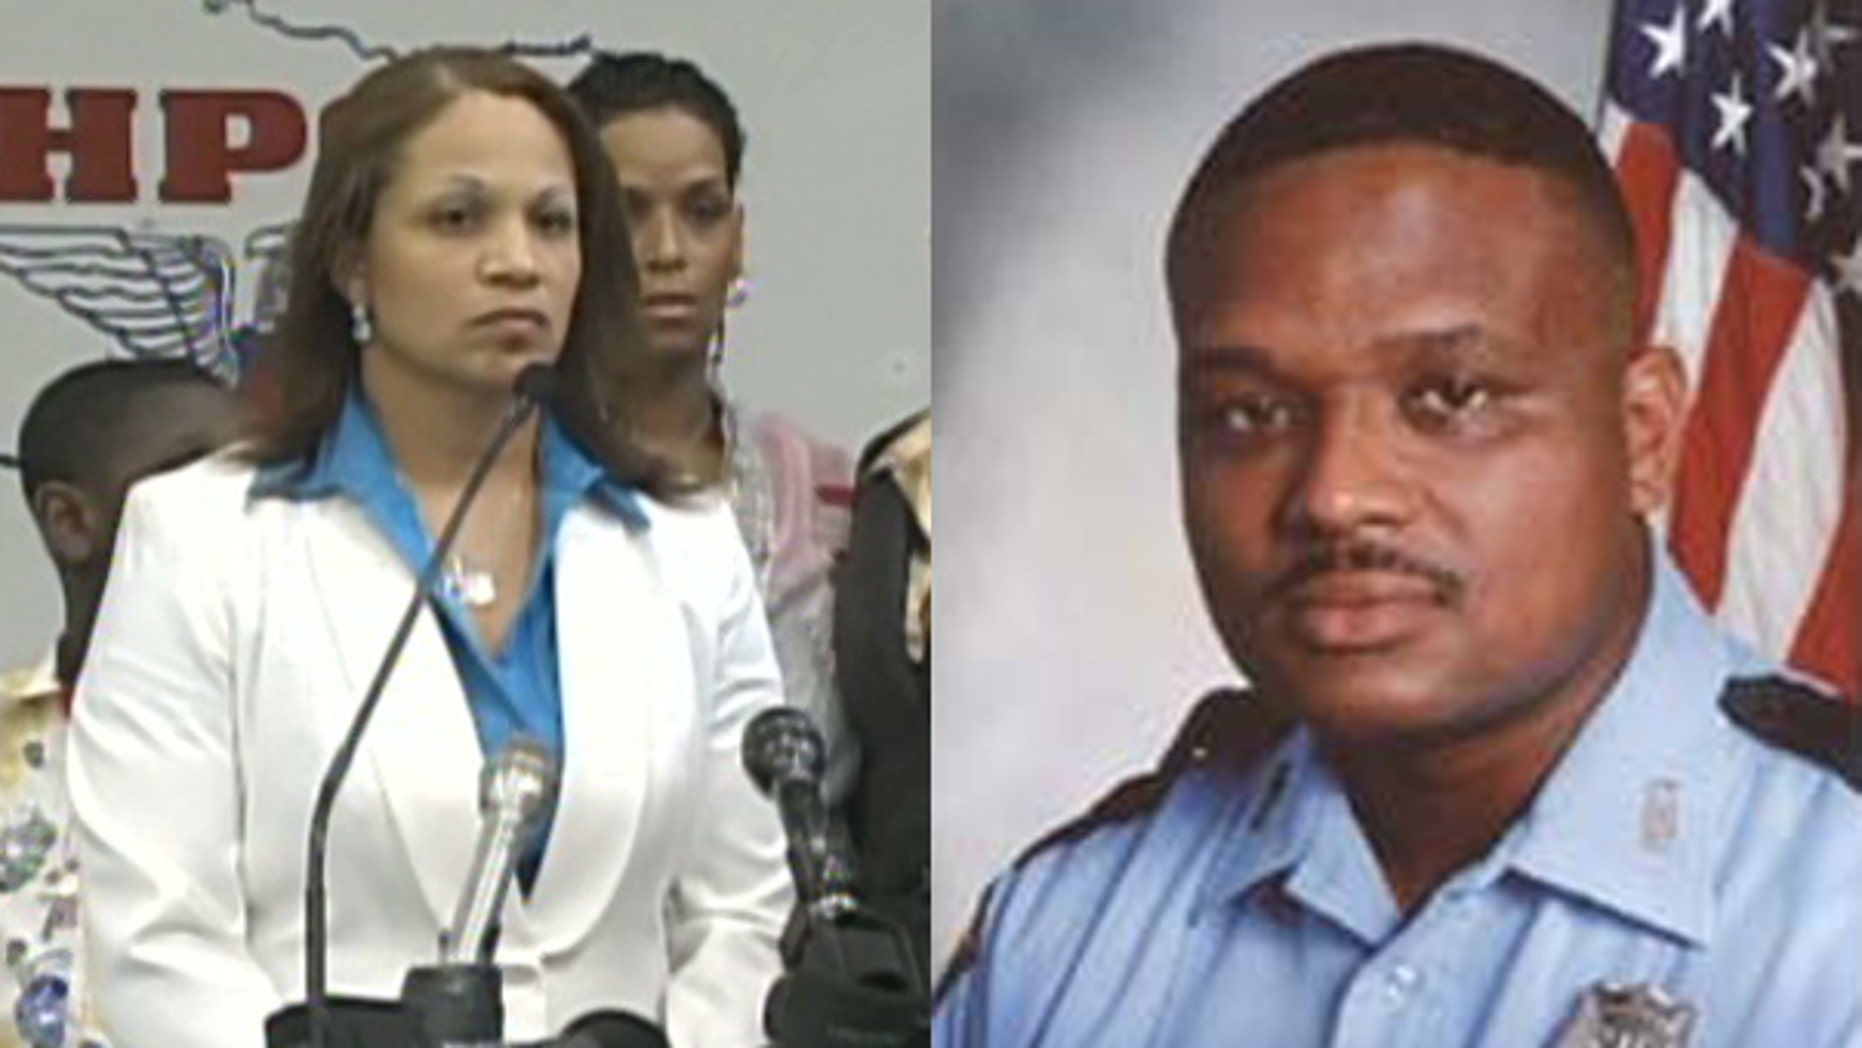 Shown here are Rodney Johnson, right, a Houston police officer killed in 2006, and his widow Joslyn Johnson. (MyFoxHouston)